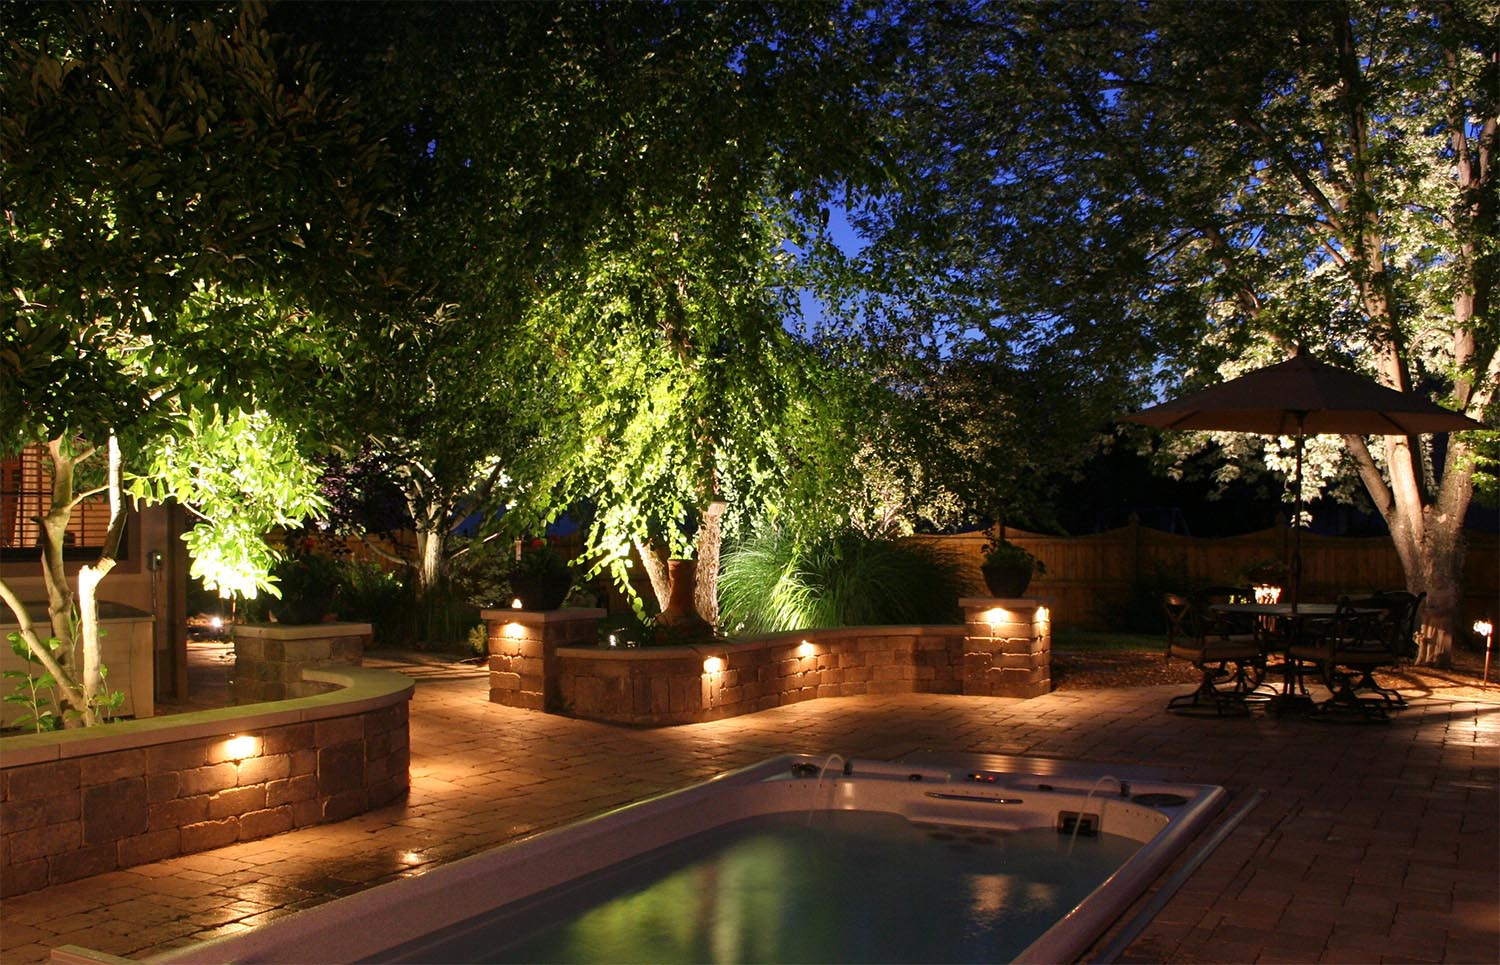 Be artful with your exterior lighting exterior renovations - How to design outdoor lighting plan ...